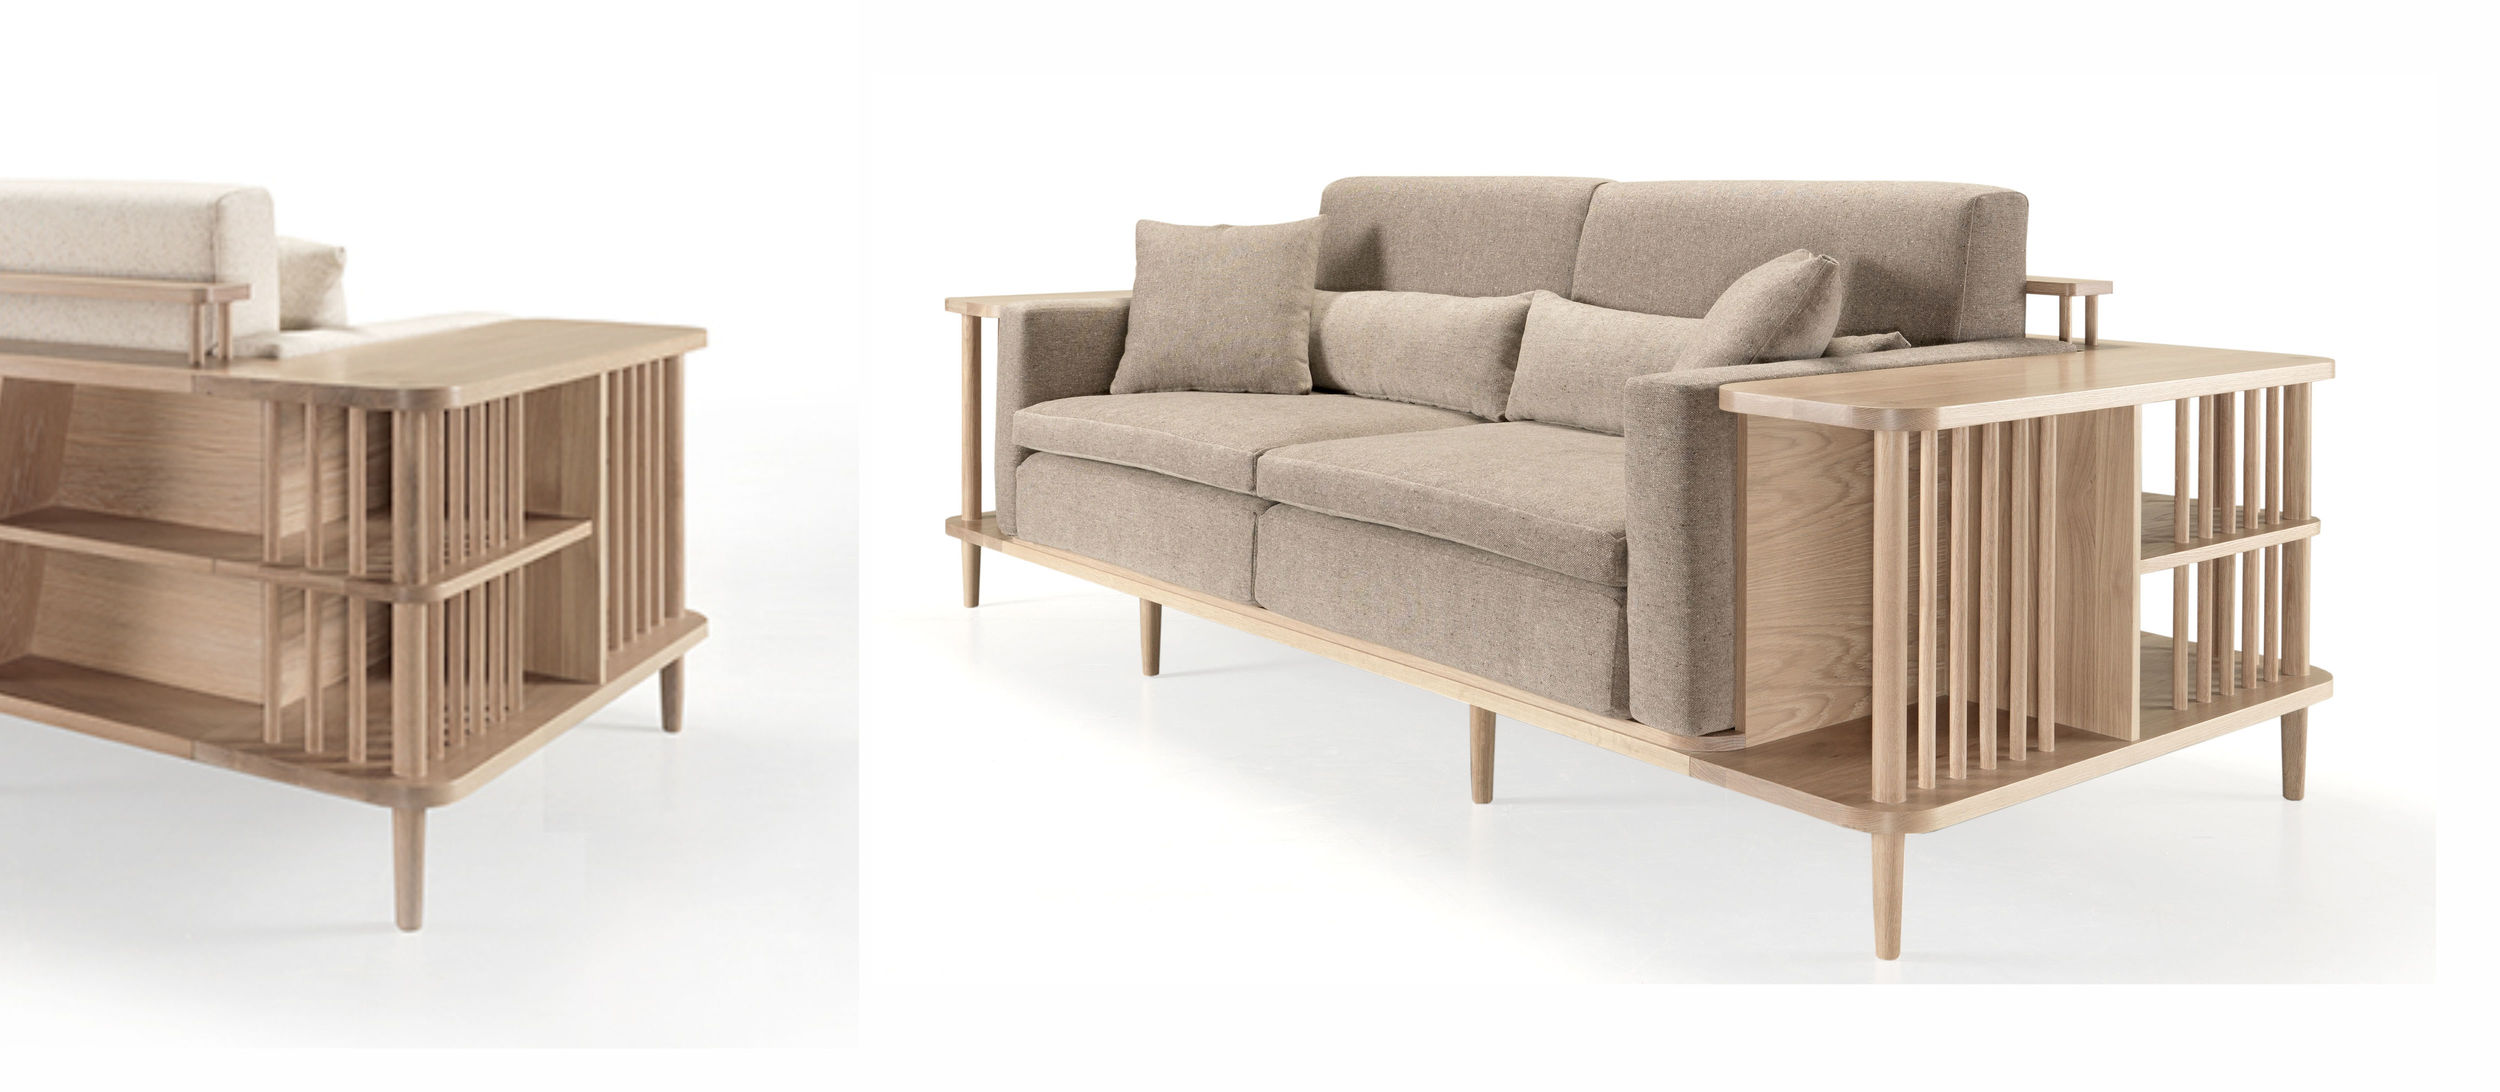 THE IMPRESSIVE   SCAFFOLD   WILL BE ON DISPLAY AND SHOWING THAT IT C AN BE MORE THAN A SIMPLE SEATING SPACE . SURPRISE YOURSELF WITH THIS  MULTFUNCTIONAL PIECE AND WITH THE  QUALITY OF OUR WOODWORKING .   READ MORE .